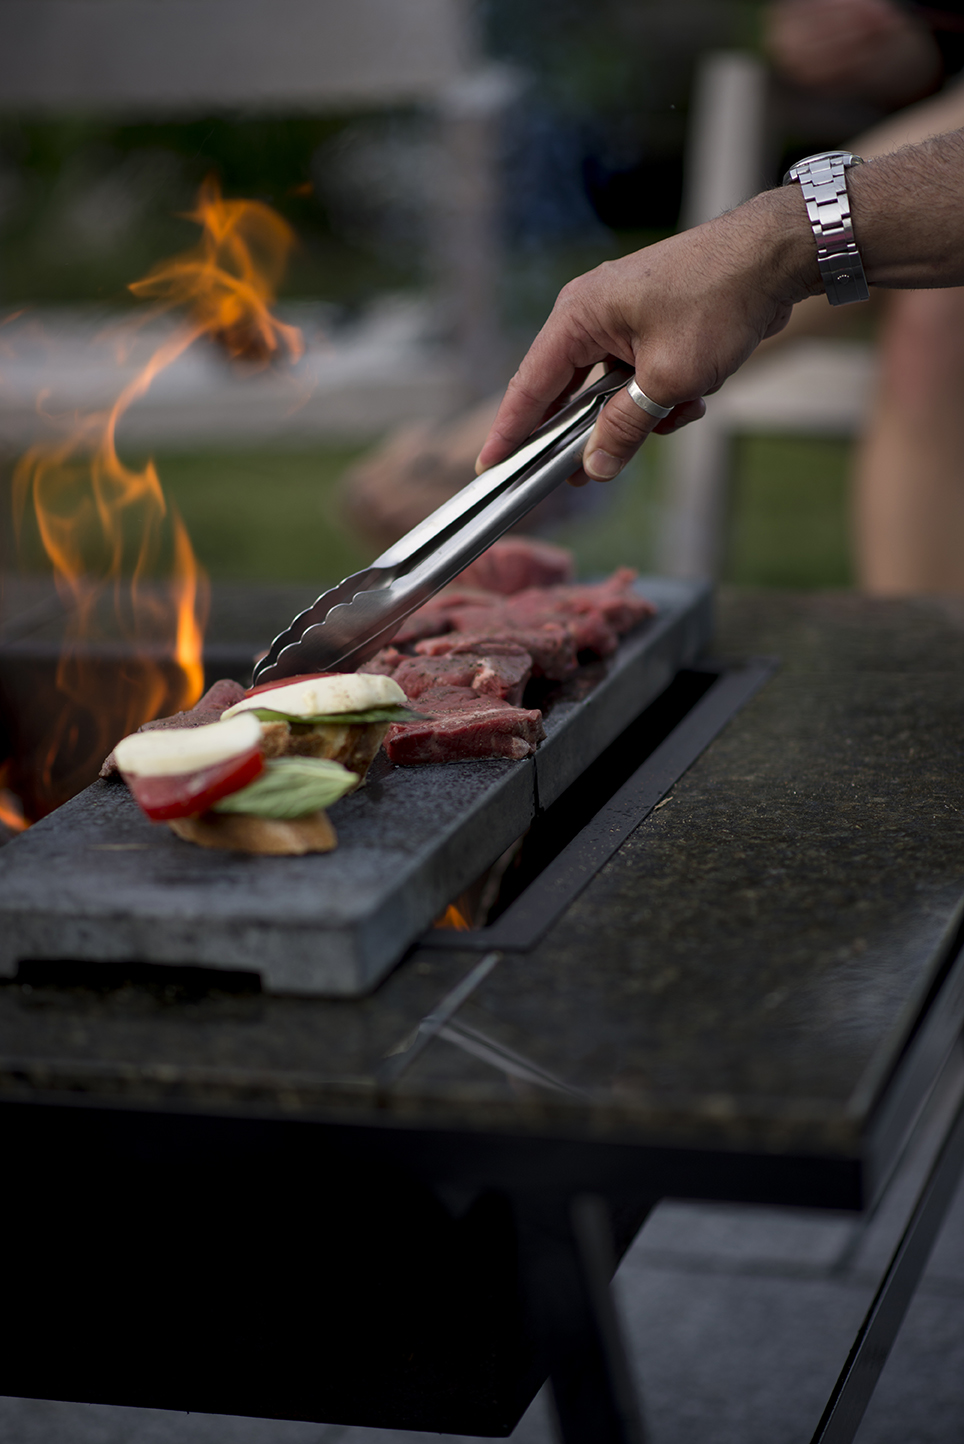 Our Vermont Soapstone is a USDA Certified grilling surface      $125